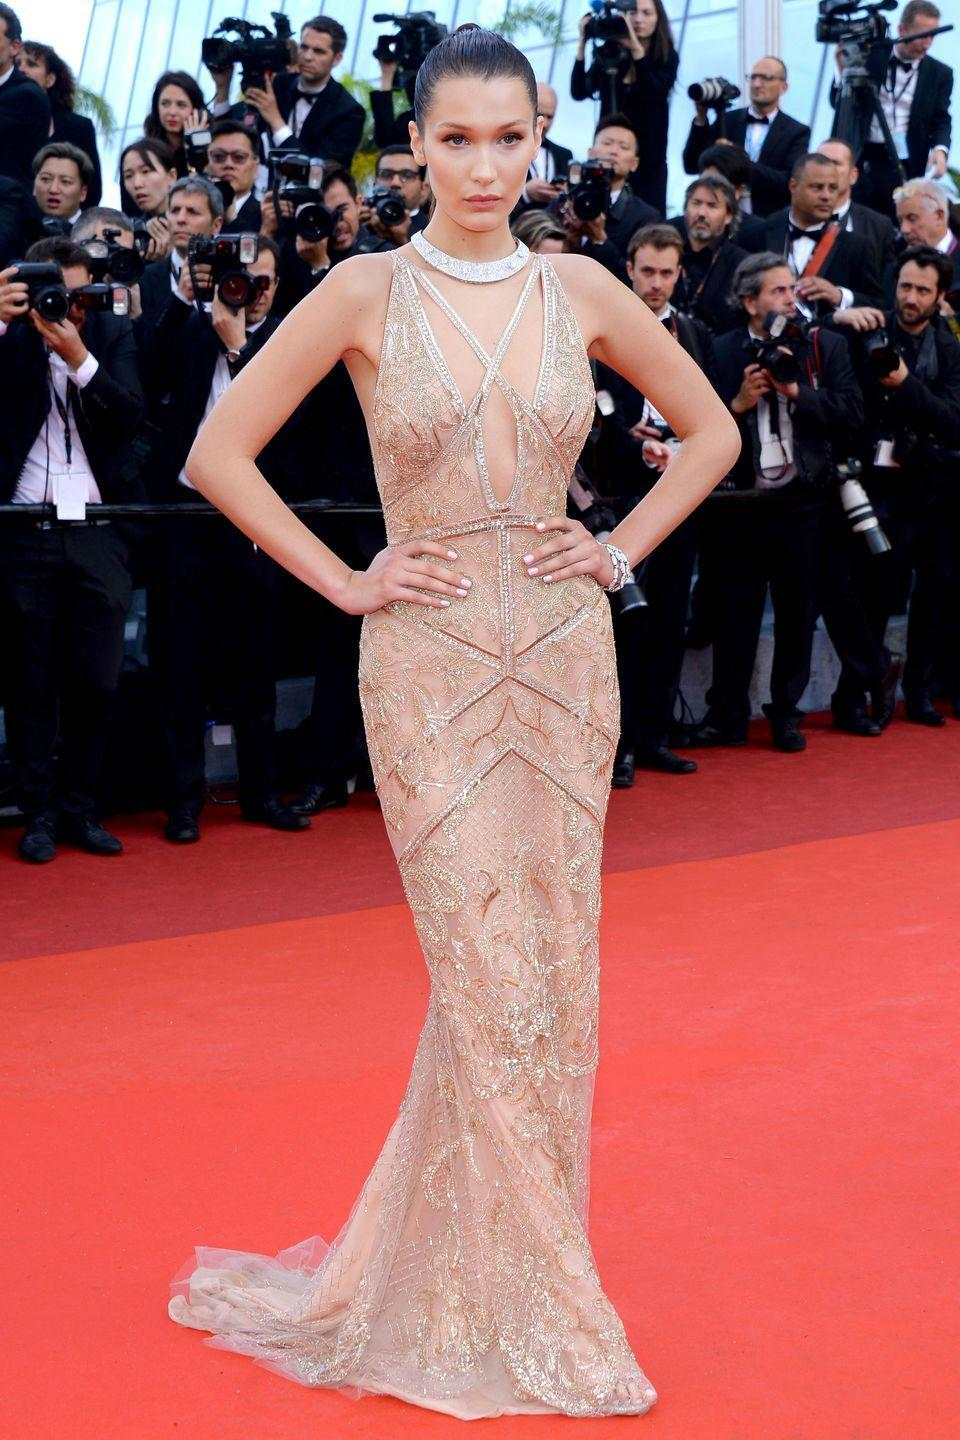 <p>At The <em>Cafe Society</em> premiere and the Opening Night Gala during the 69th annual Cannes Film Festival at the Palais des Festivals in Cannes, France.</p>